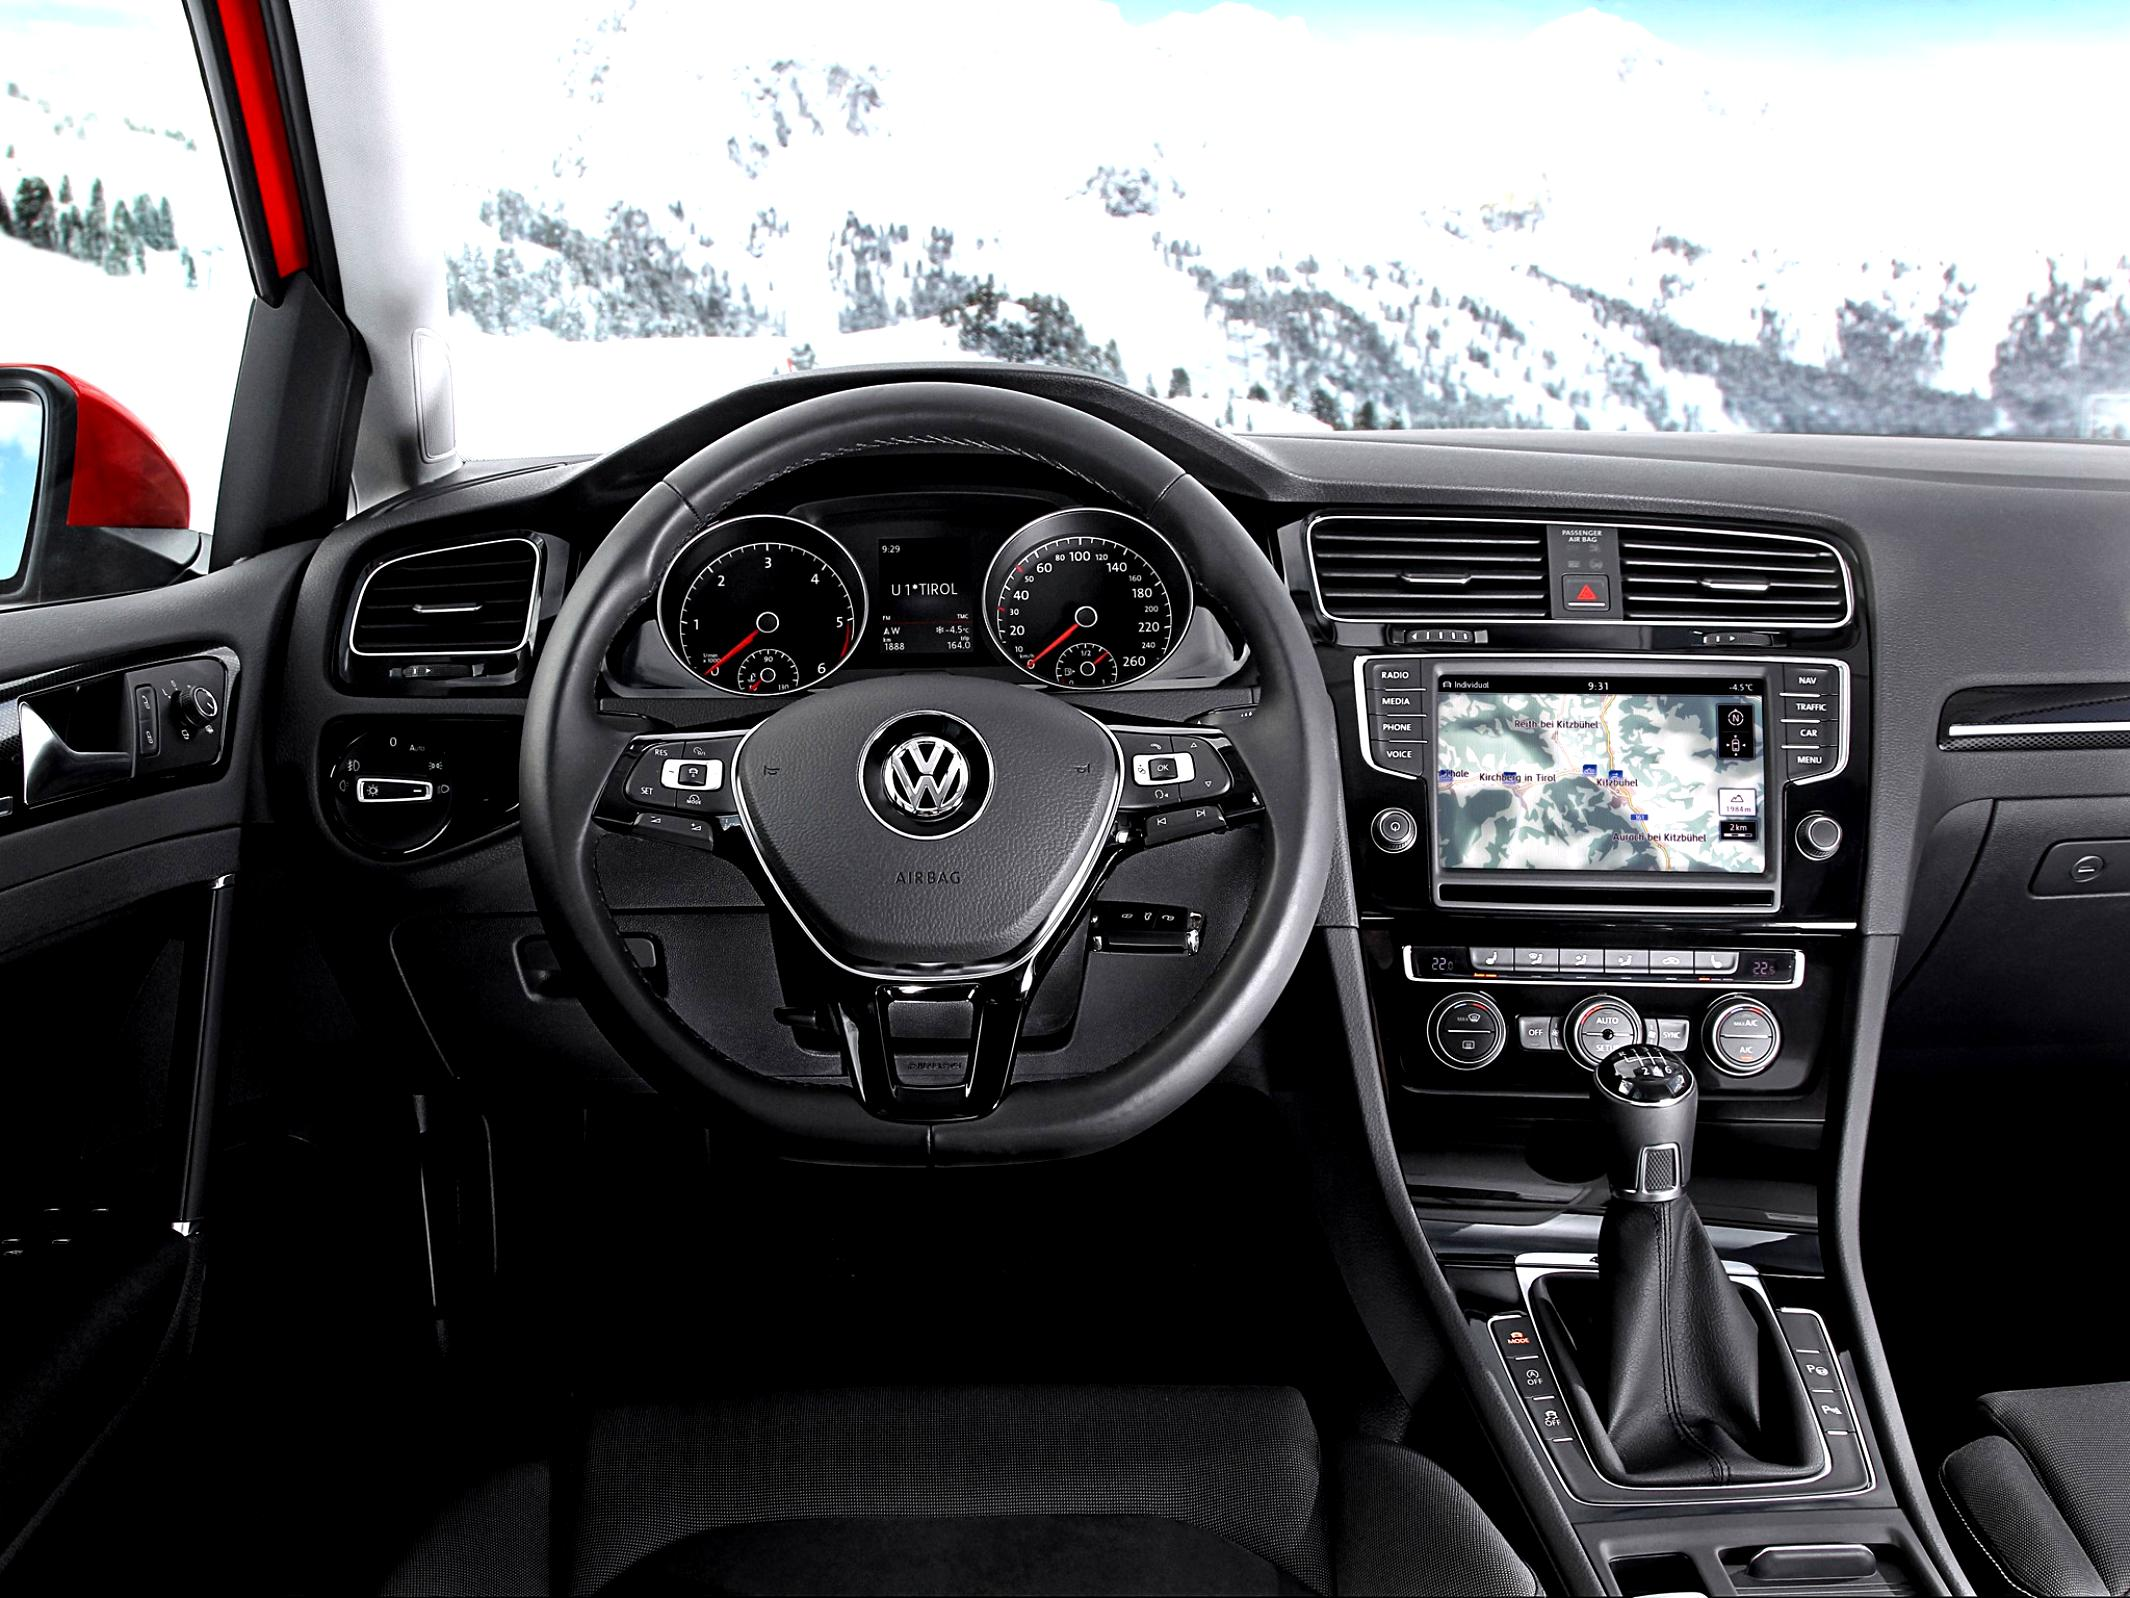 Volkswagen Golf VII 5 Doors 2012 #88